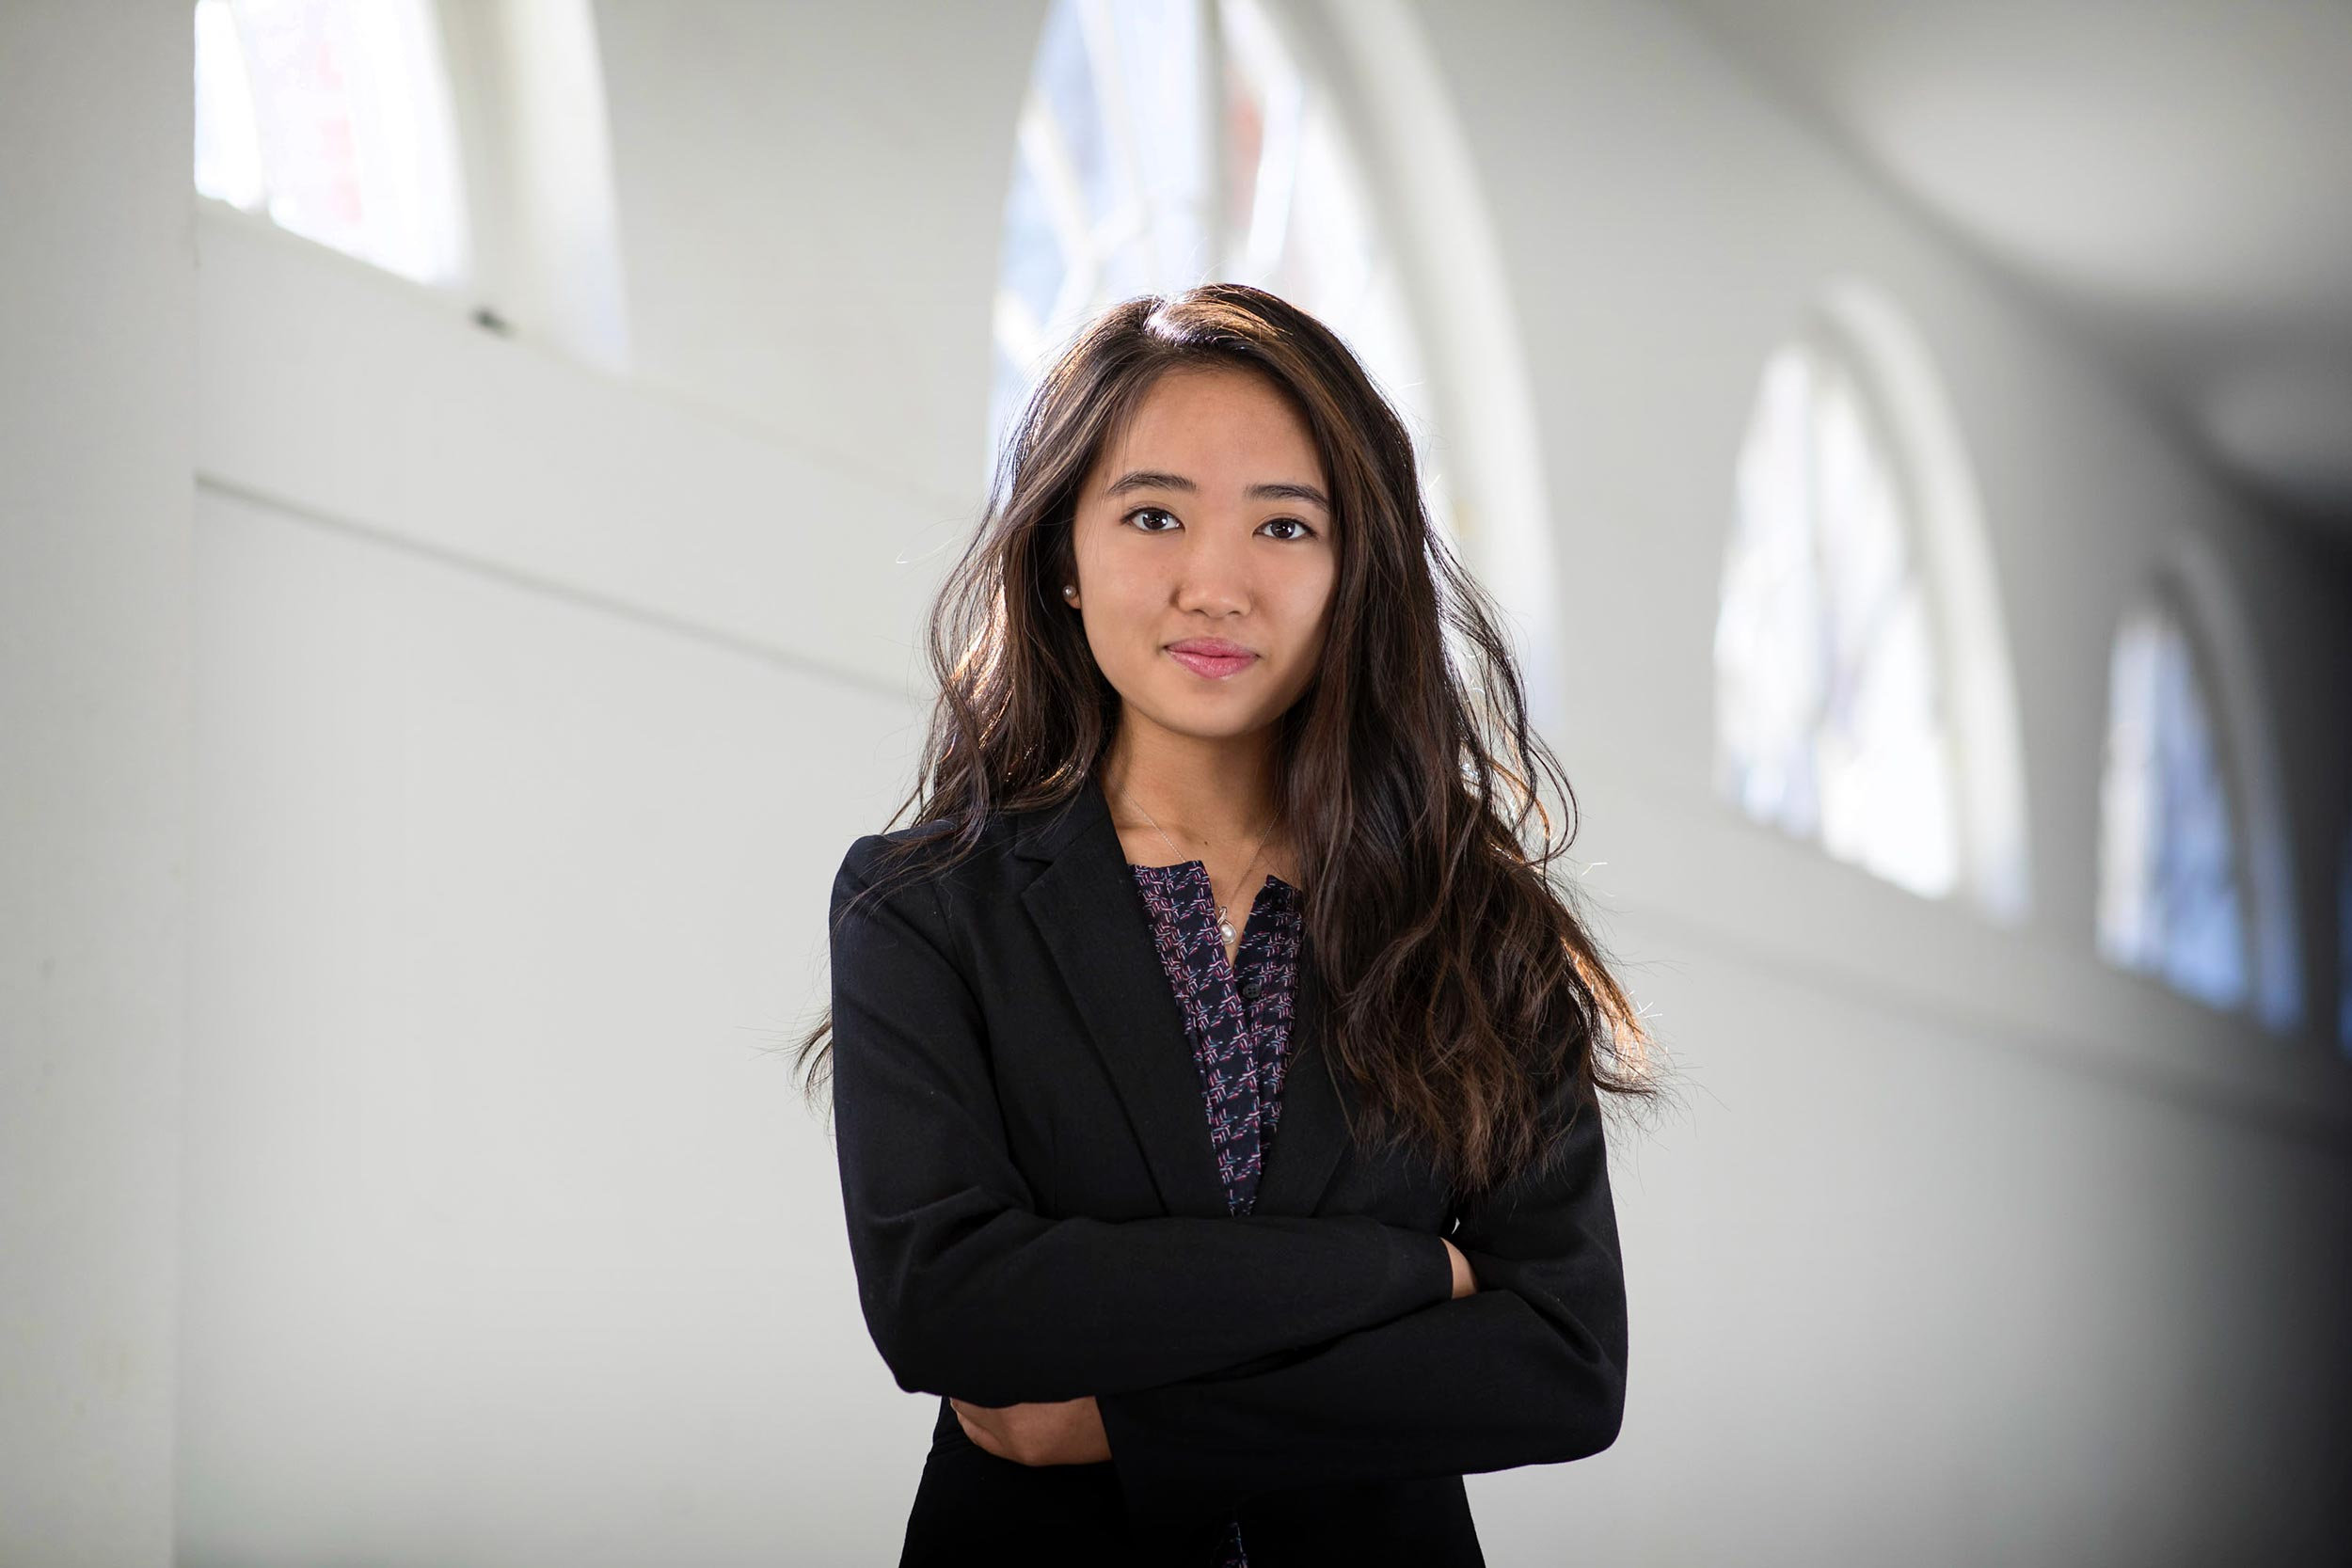 The ability to think ahead and overcome setbacks makes Joyce Cheng a strong researcher, her faculty mentor said.